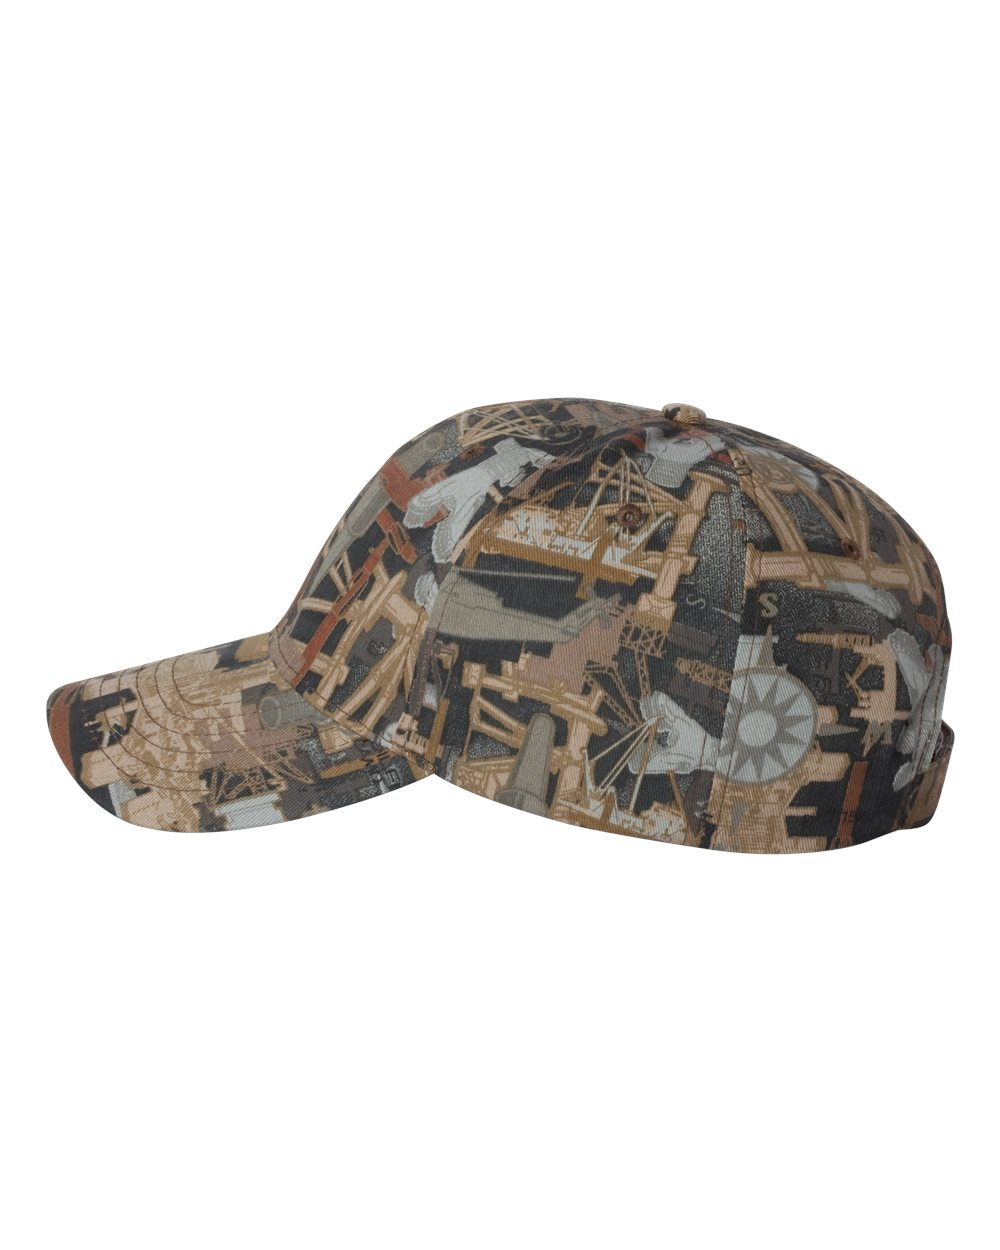 Kati OIL15 - Oilfield Camo Cap